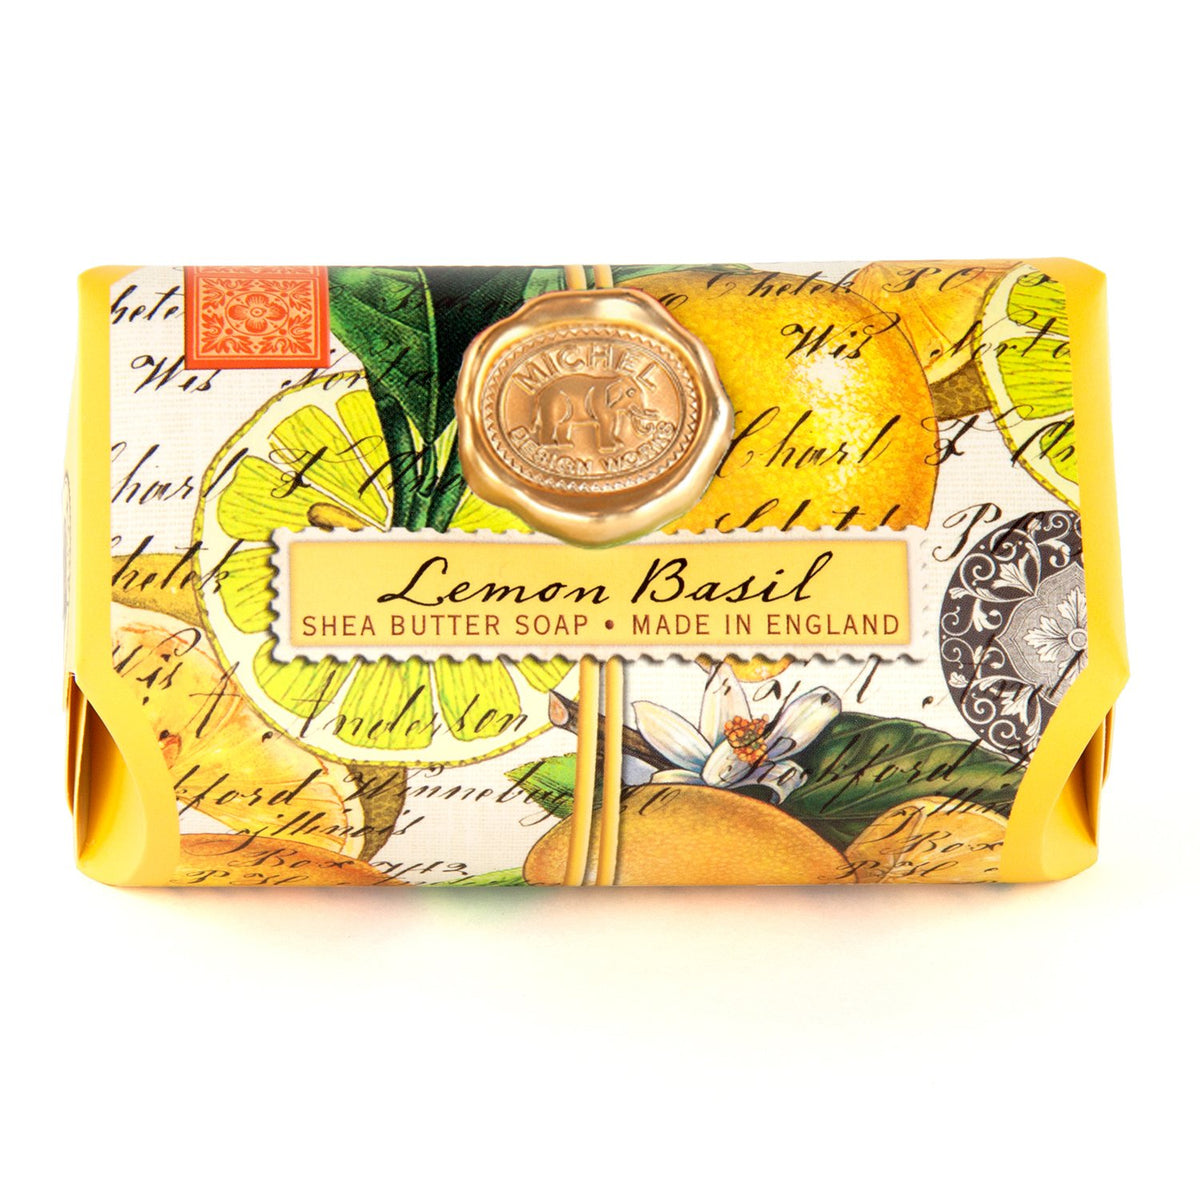 Michel Design Works - Lemon Basil Shea Butter Bath Soap Bars